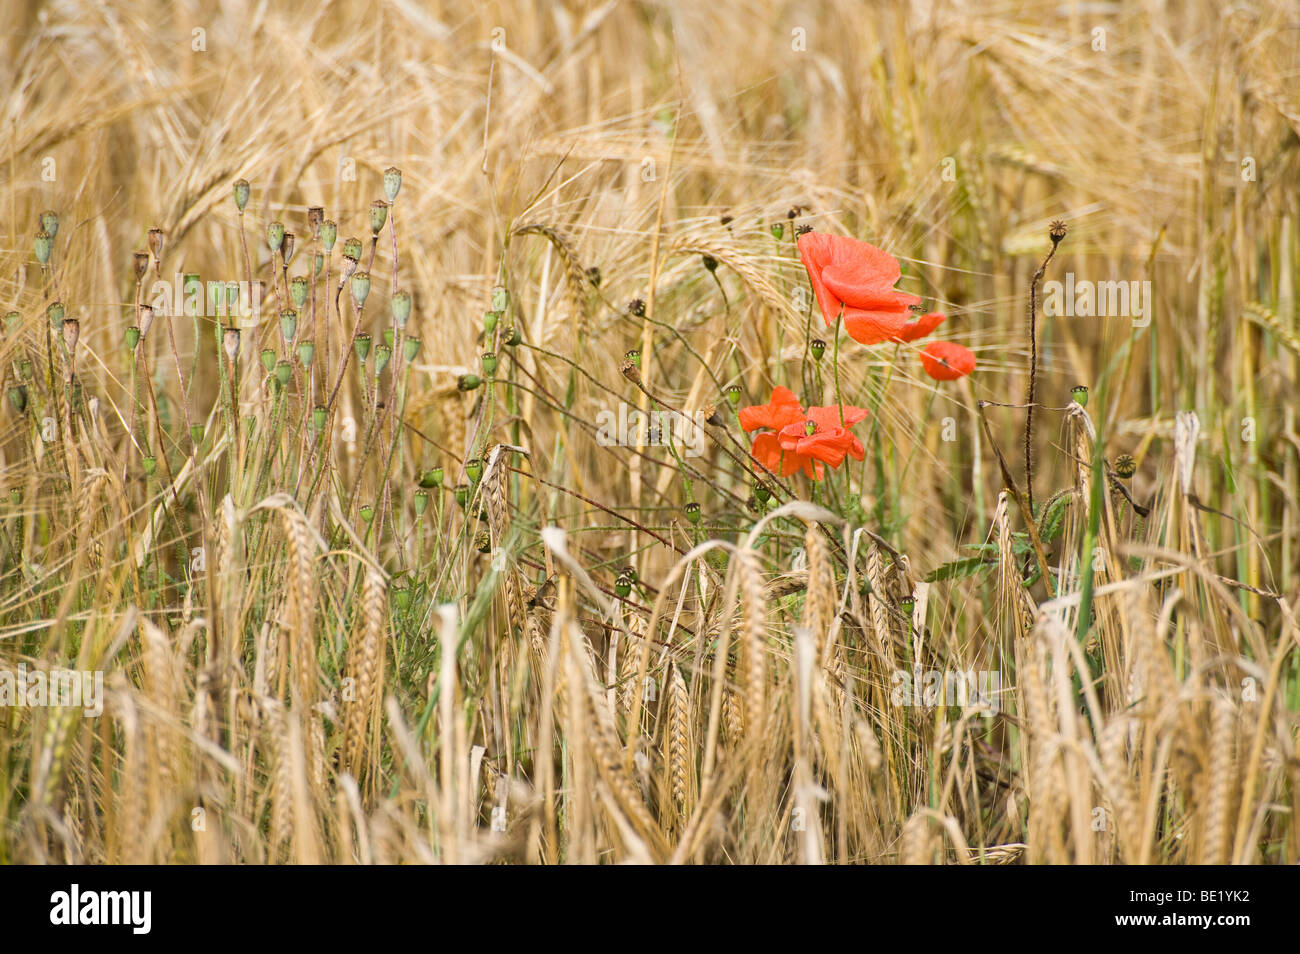 Wild red poppies in a field of wheat in the English countryside. - Stock Image